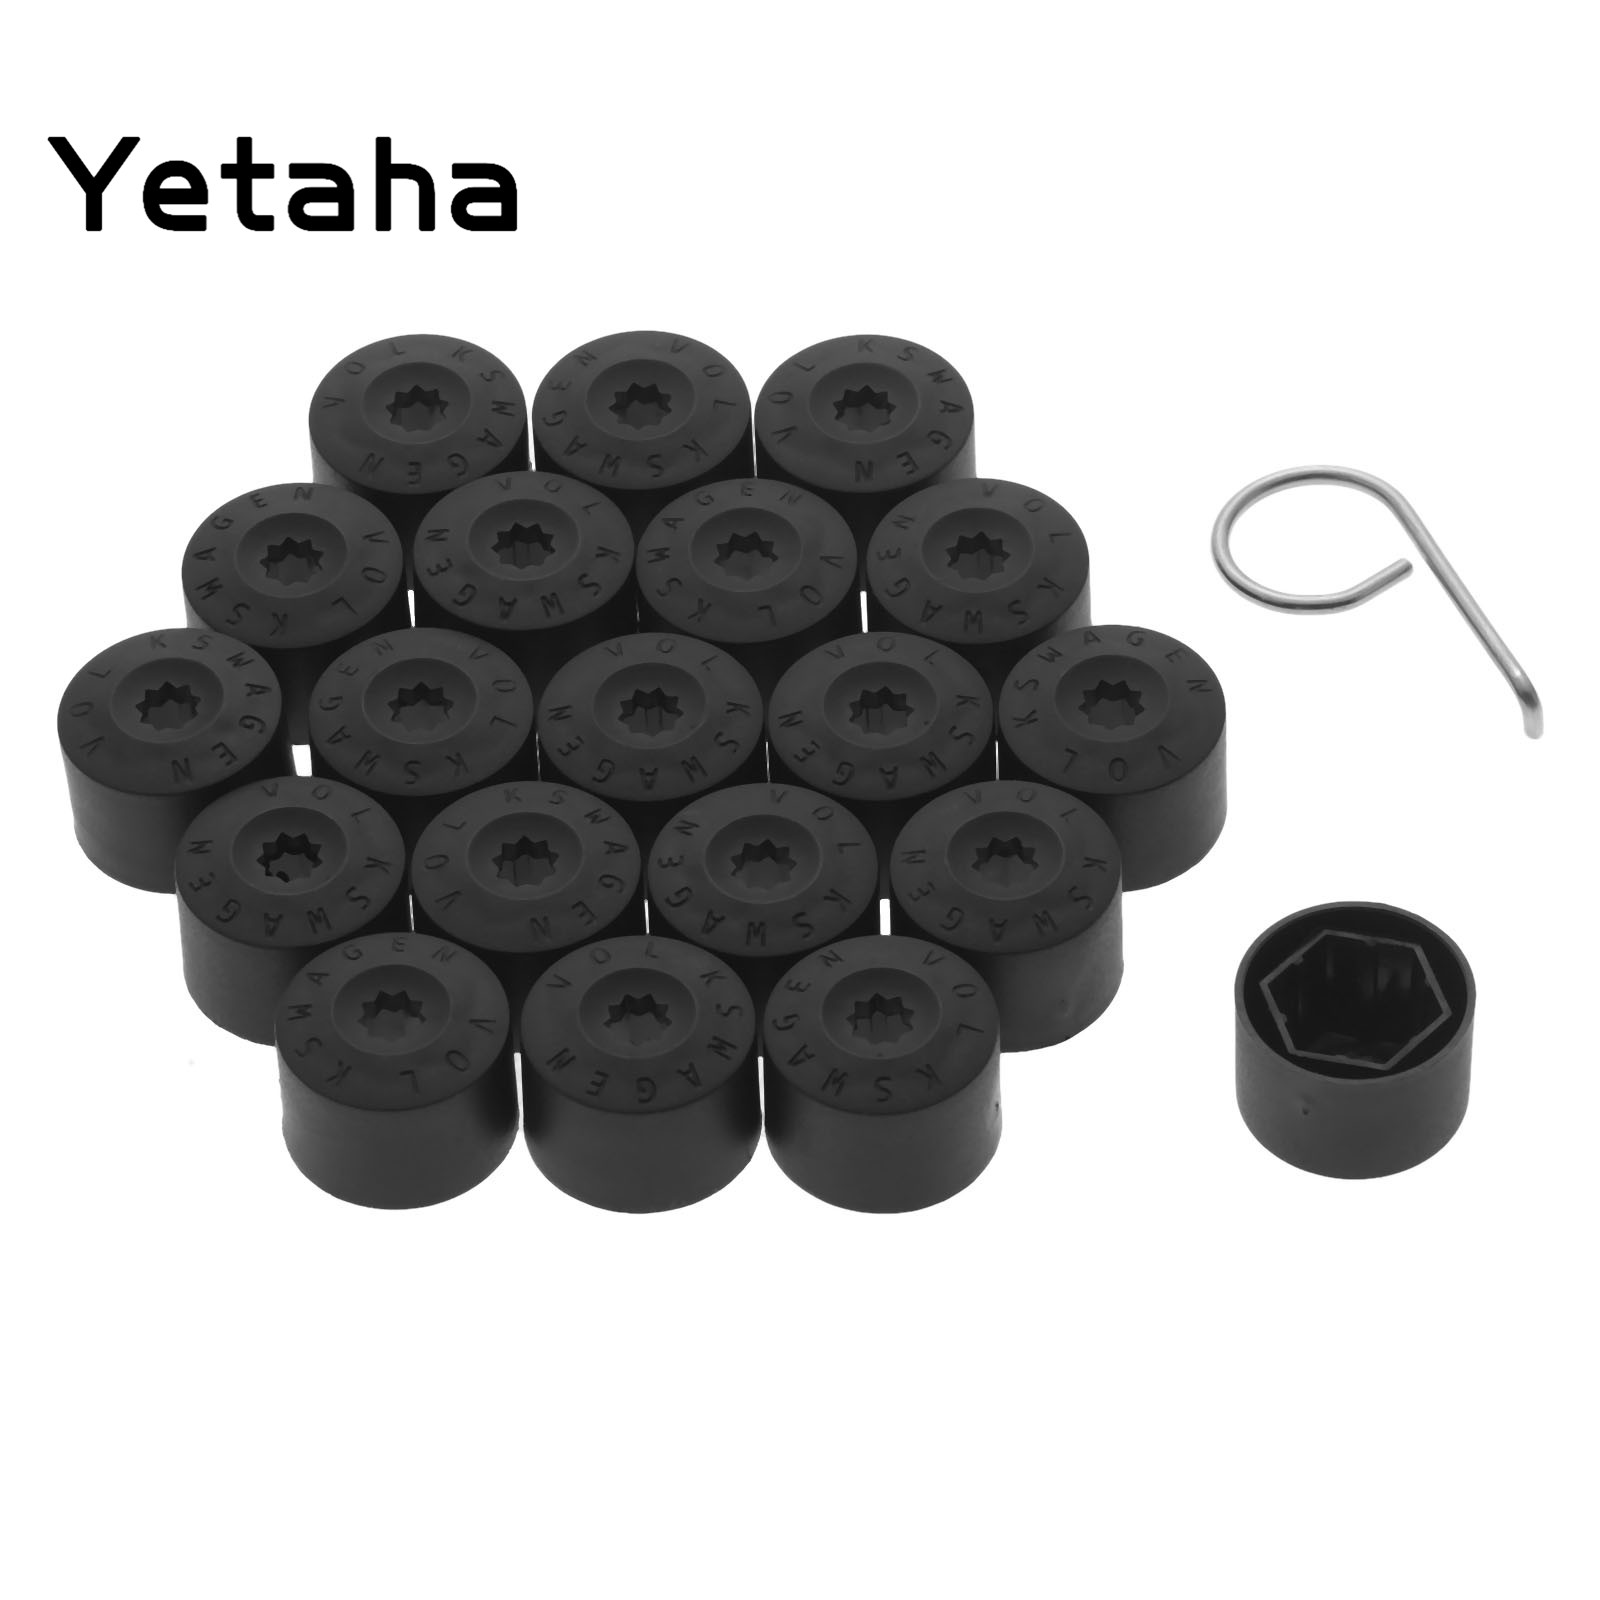 PLASTIC Removal Tool for Wheel Bolt Nut Caps Covers fits SKODA FABIA